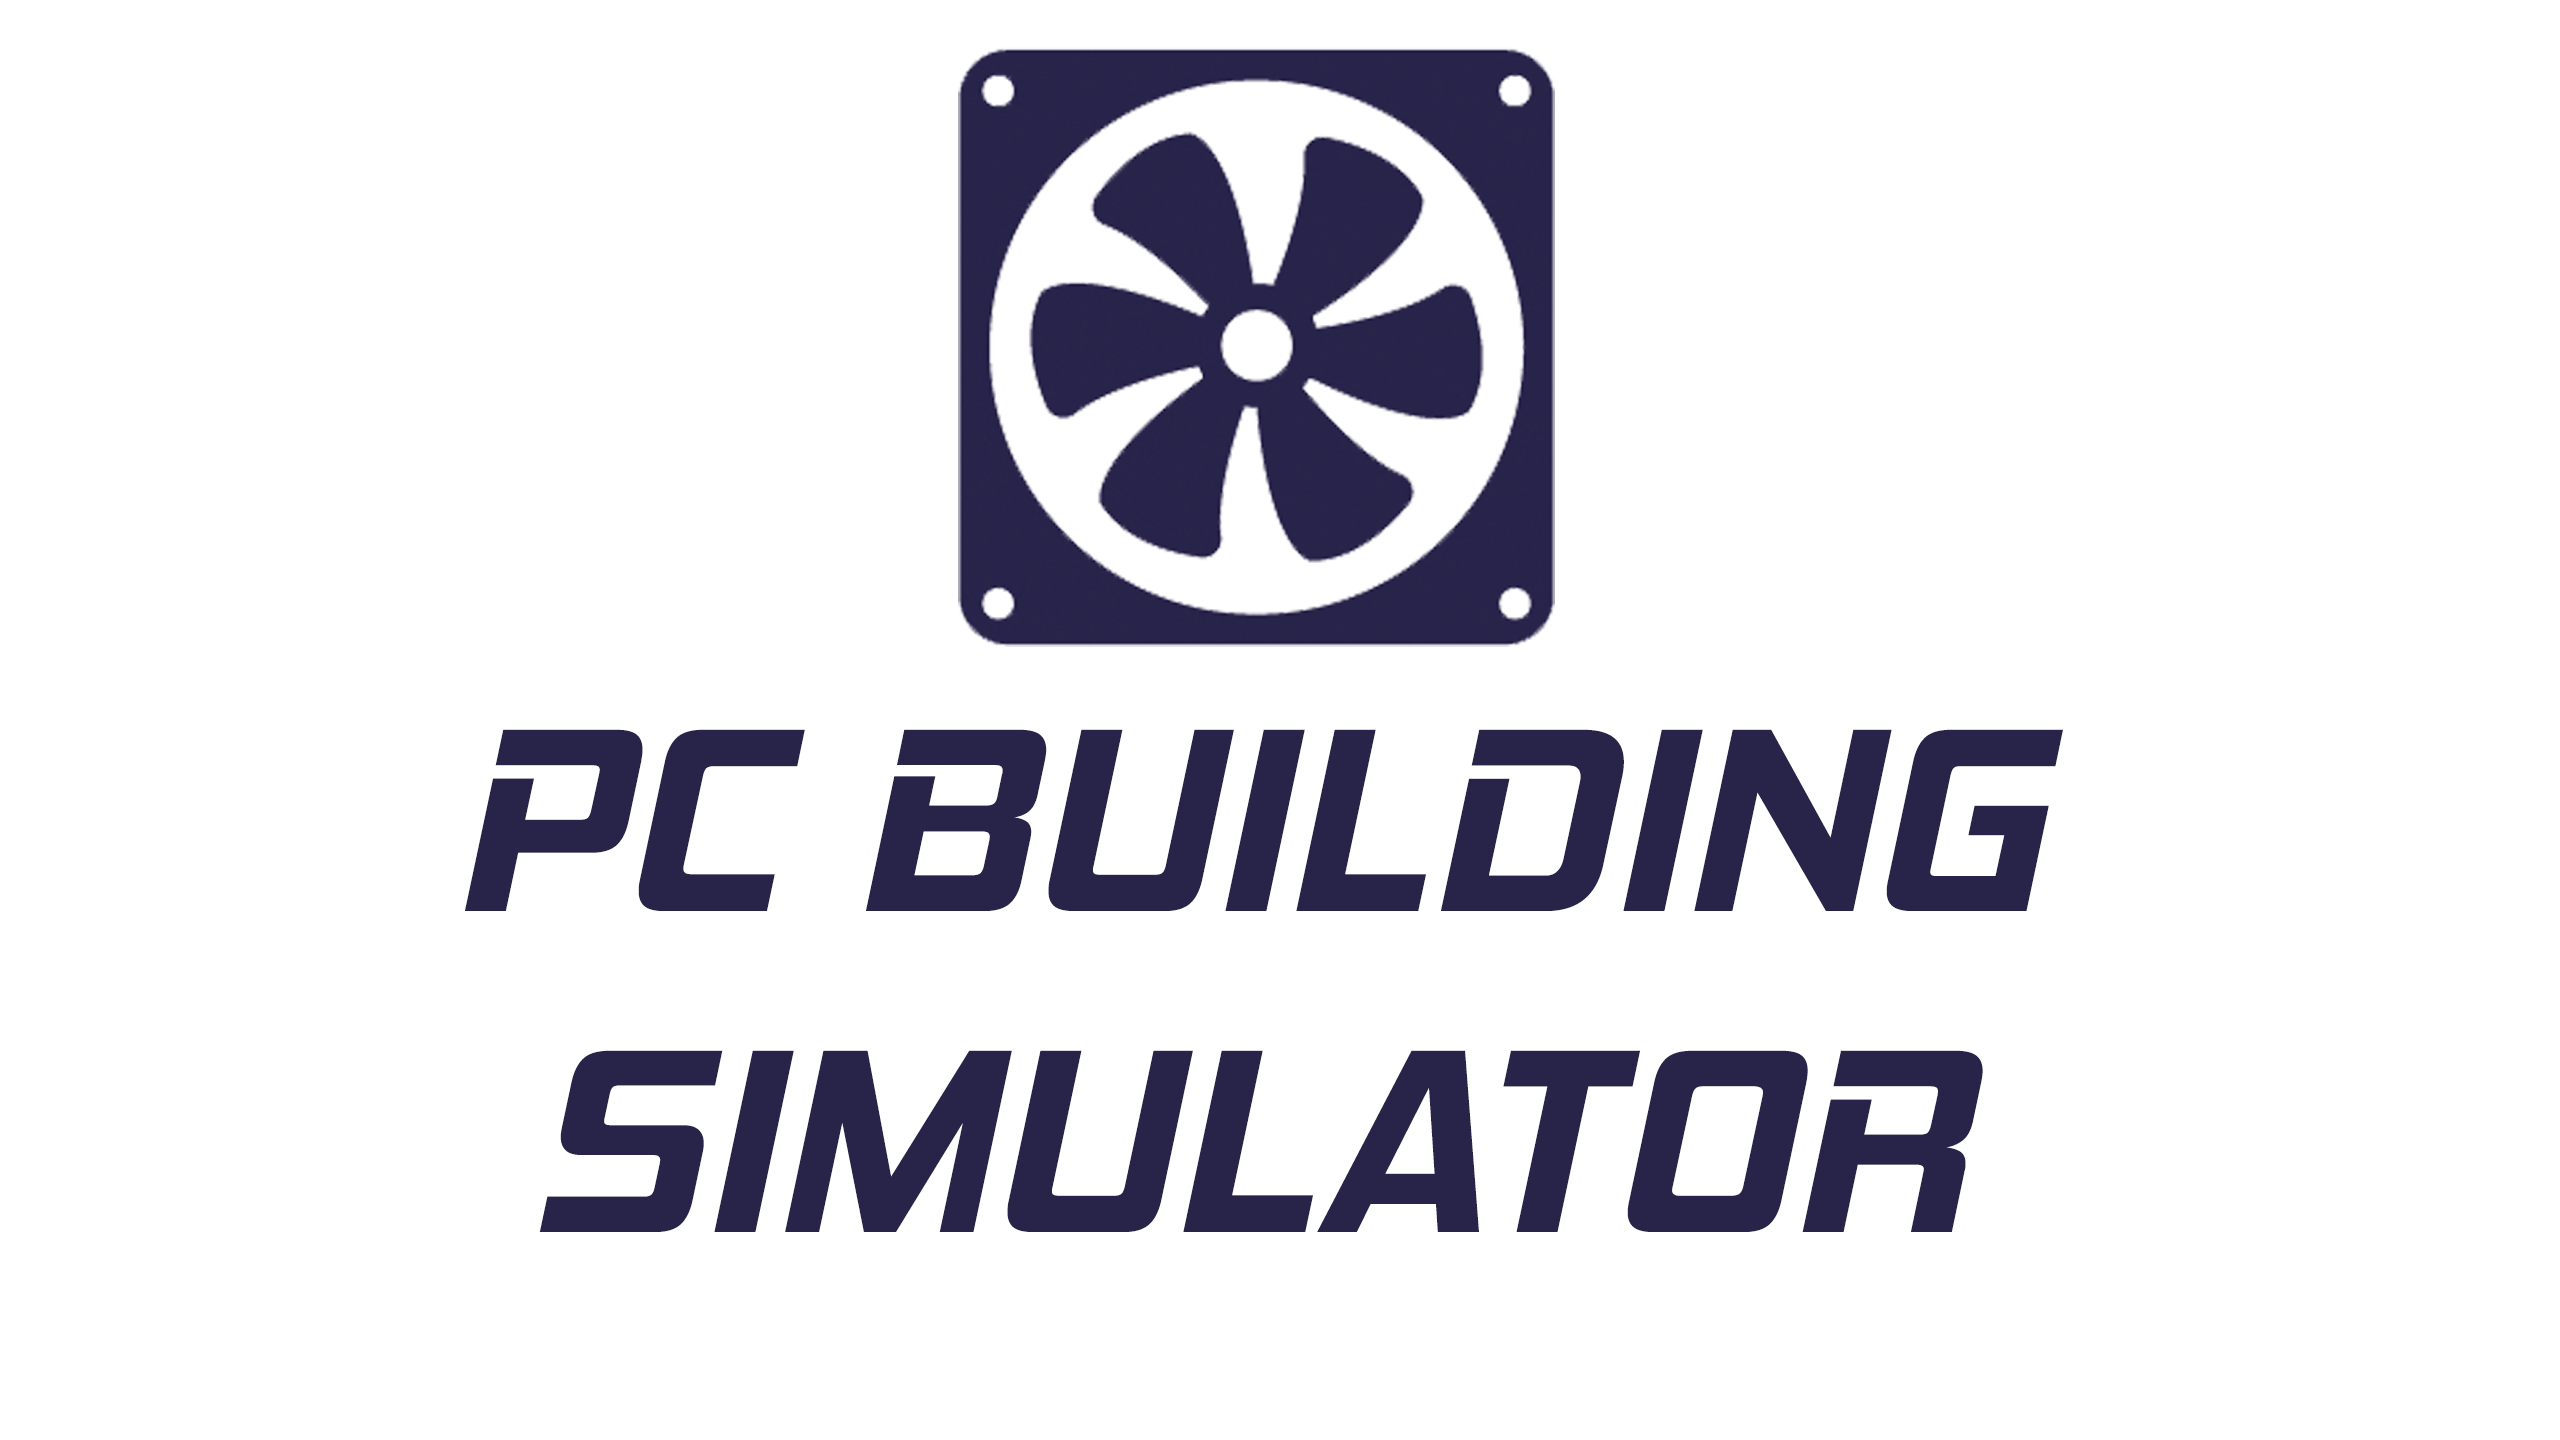 PC Building Simulator Demo by Claudiu Kiss, The Irregular